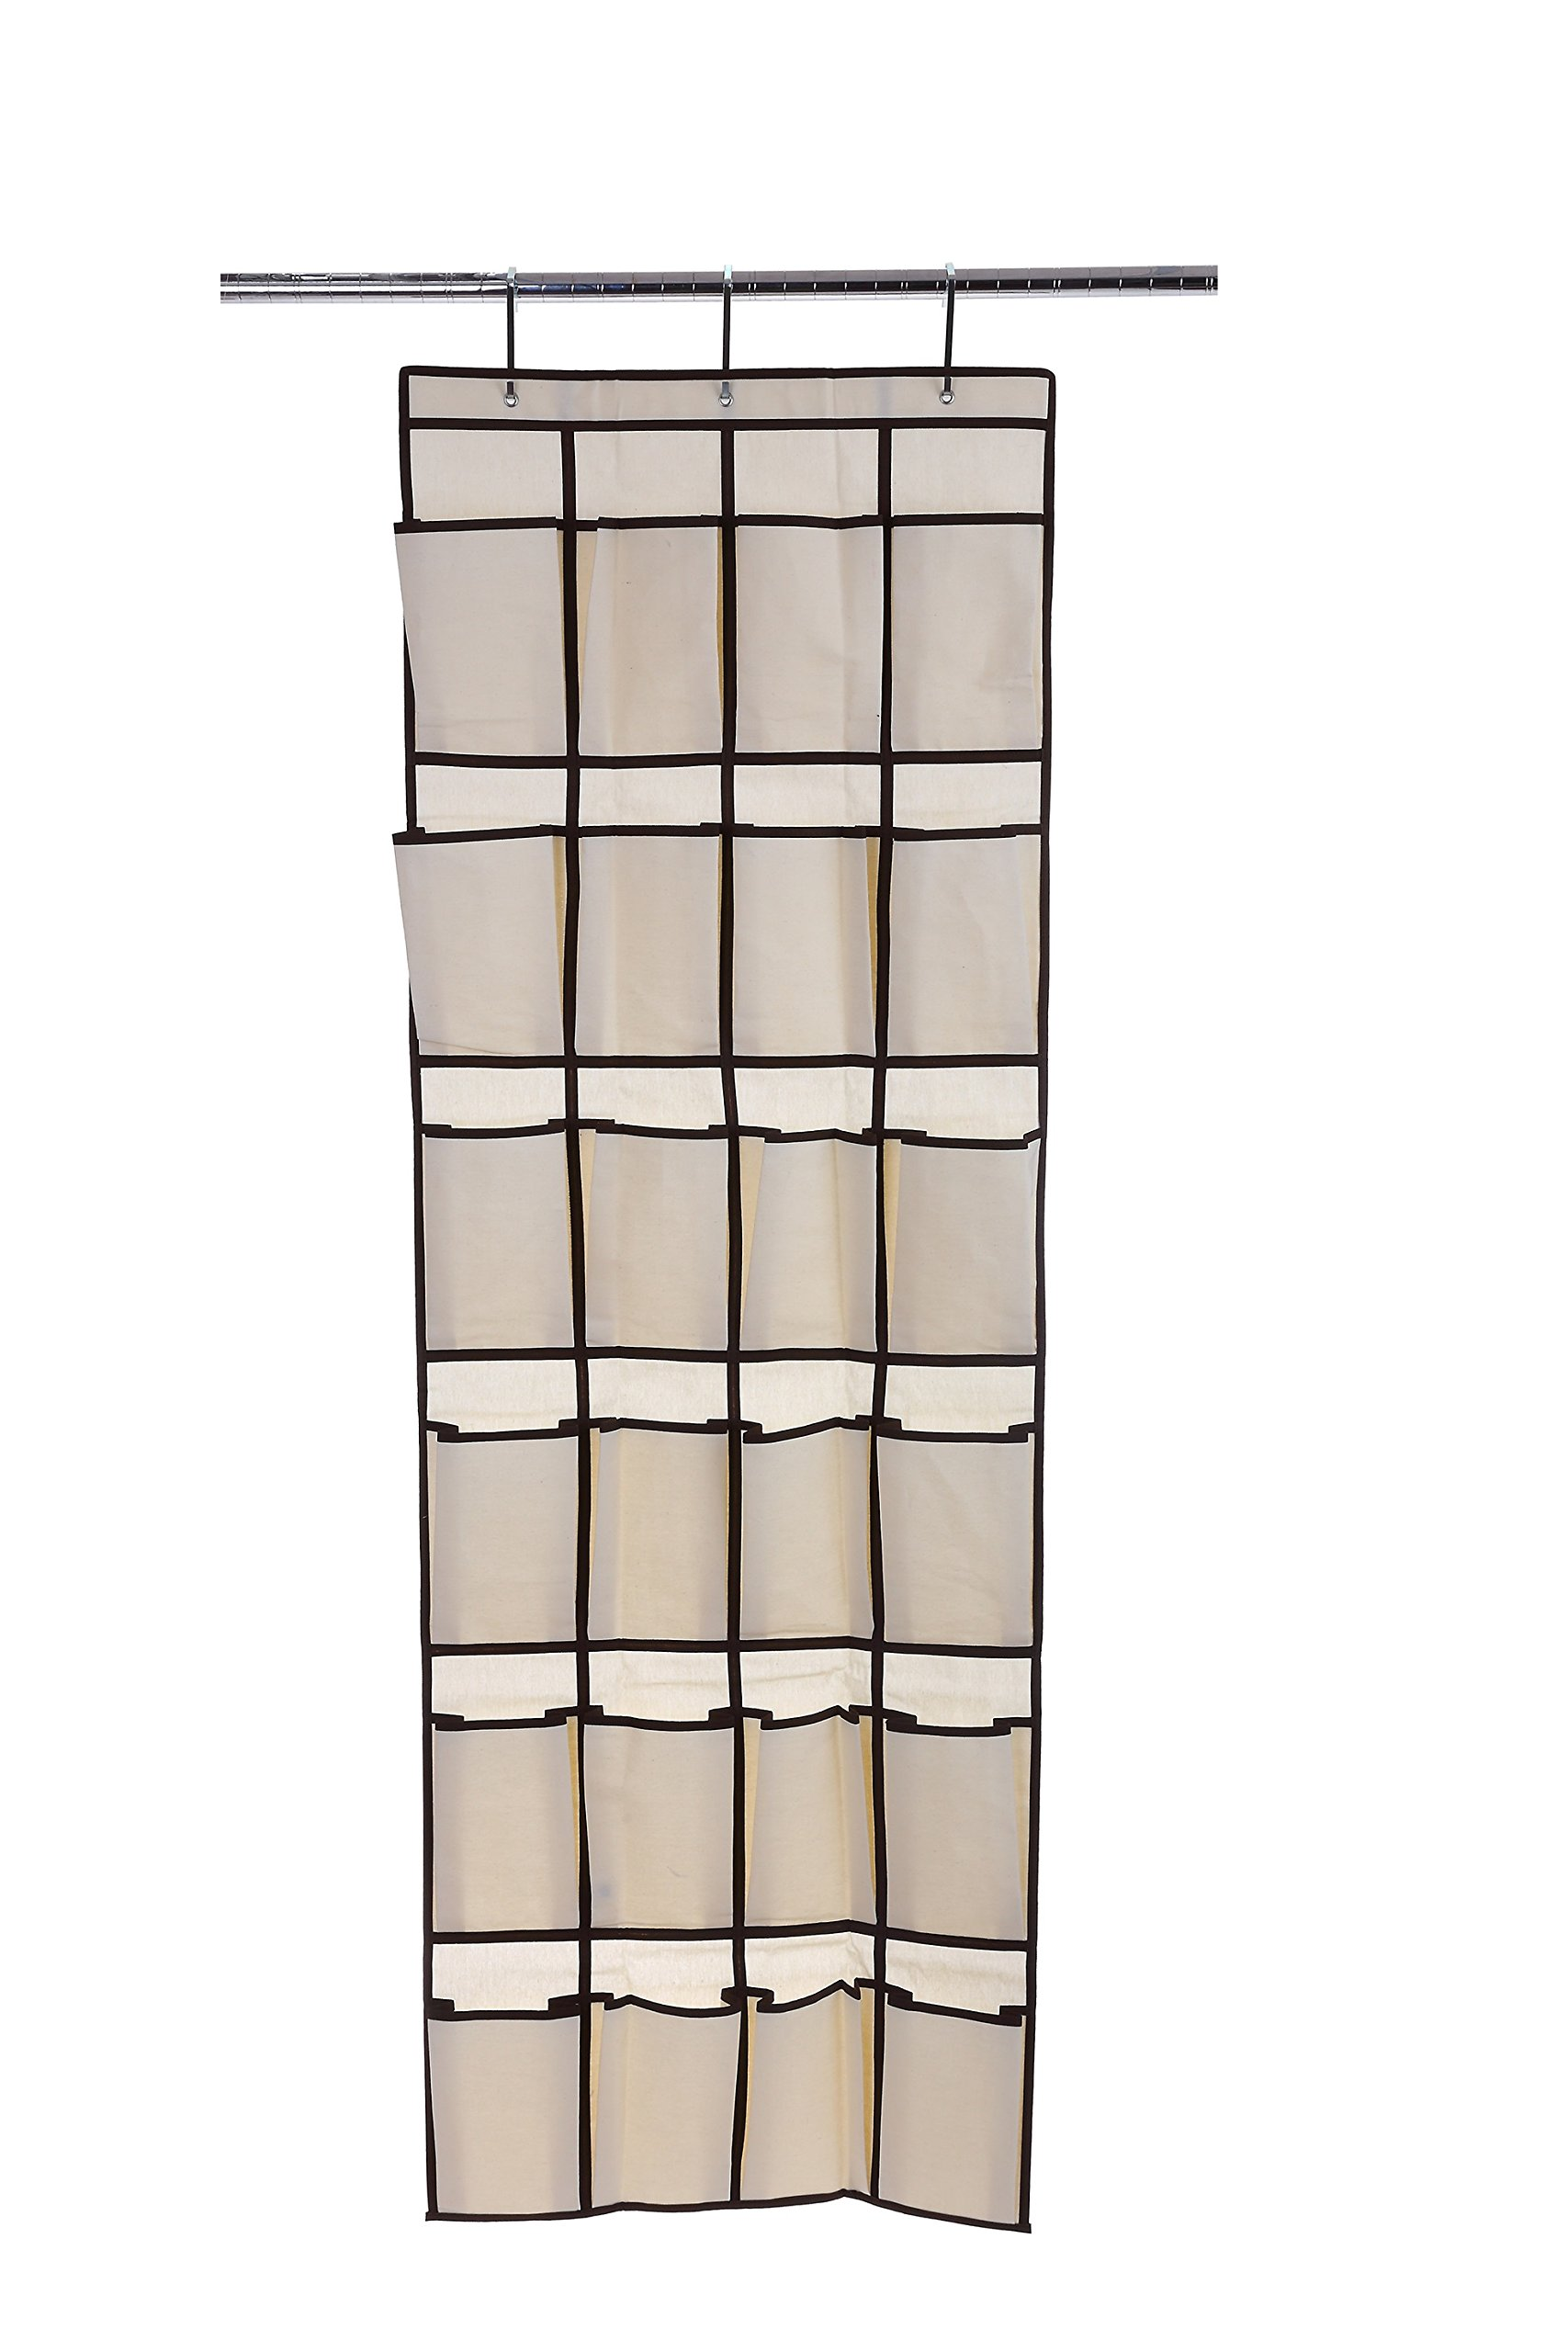 Ybmhome 24 Pocket Fabric Hanging Over the Closet Rod Shoe Storage Rack Organizer with 4 Metal Hanger Hooks Natural w/Brown Trim 2207 (1)